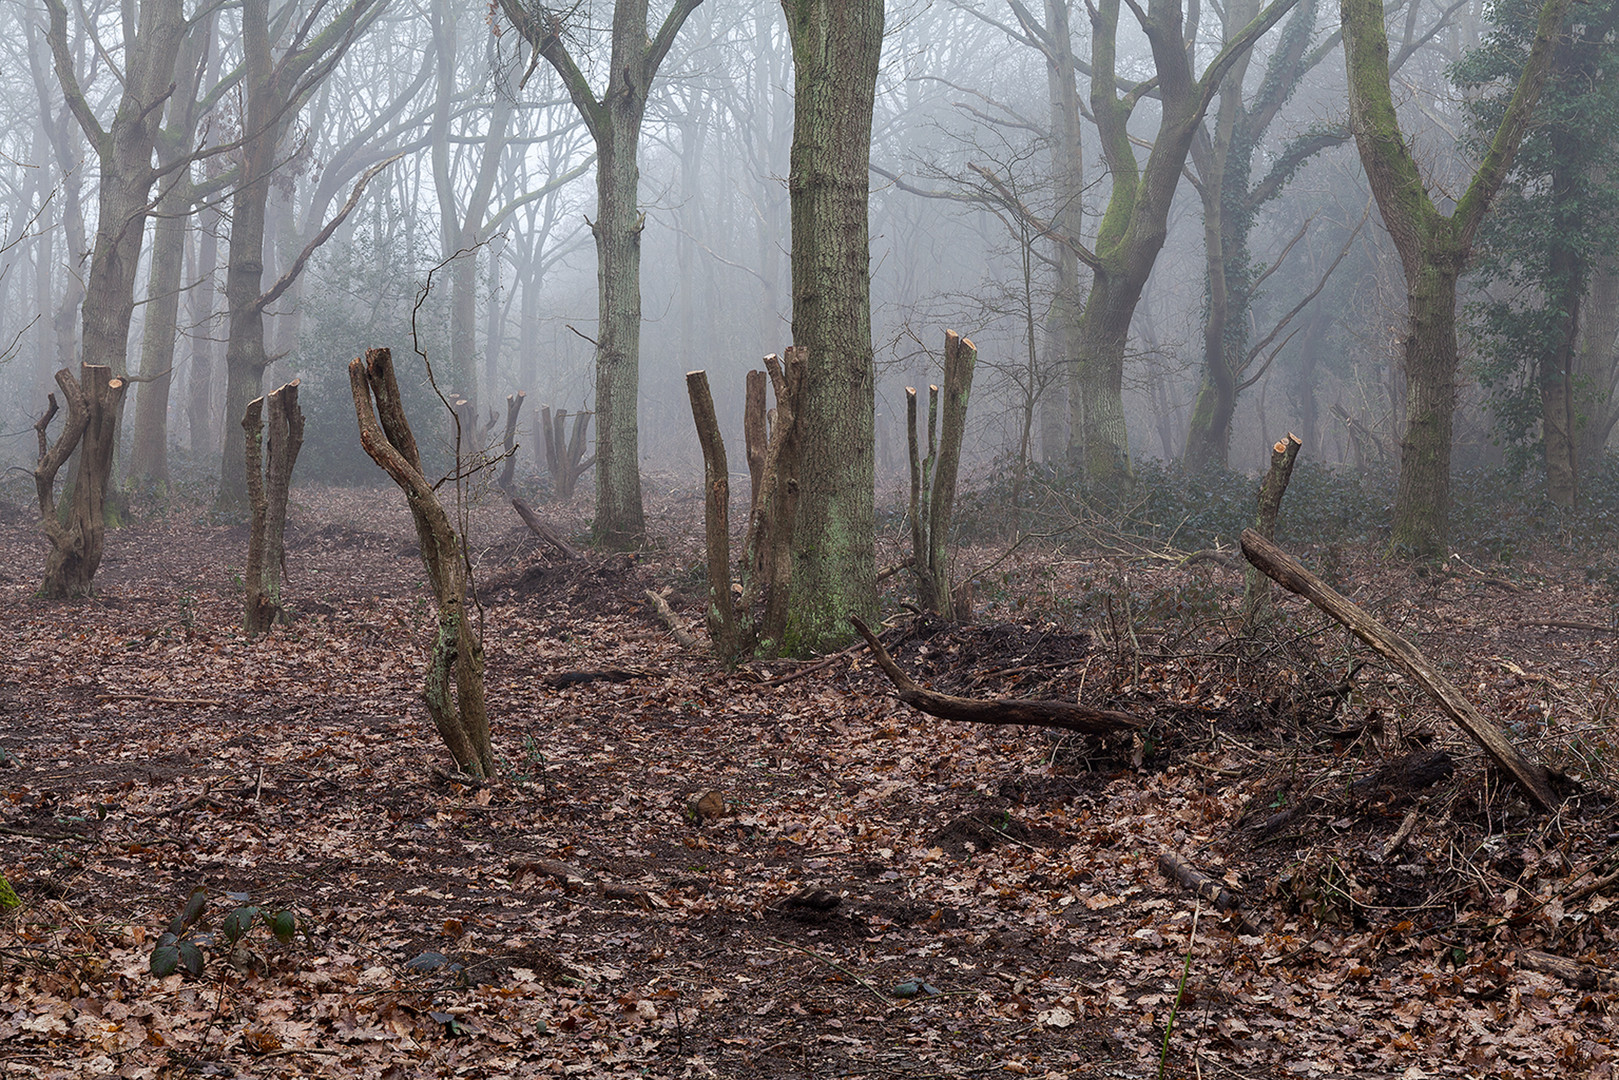 Lopped tree branches in front of mistly woodland, Wimbledon Common, London, England, UK.